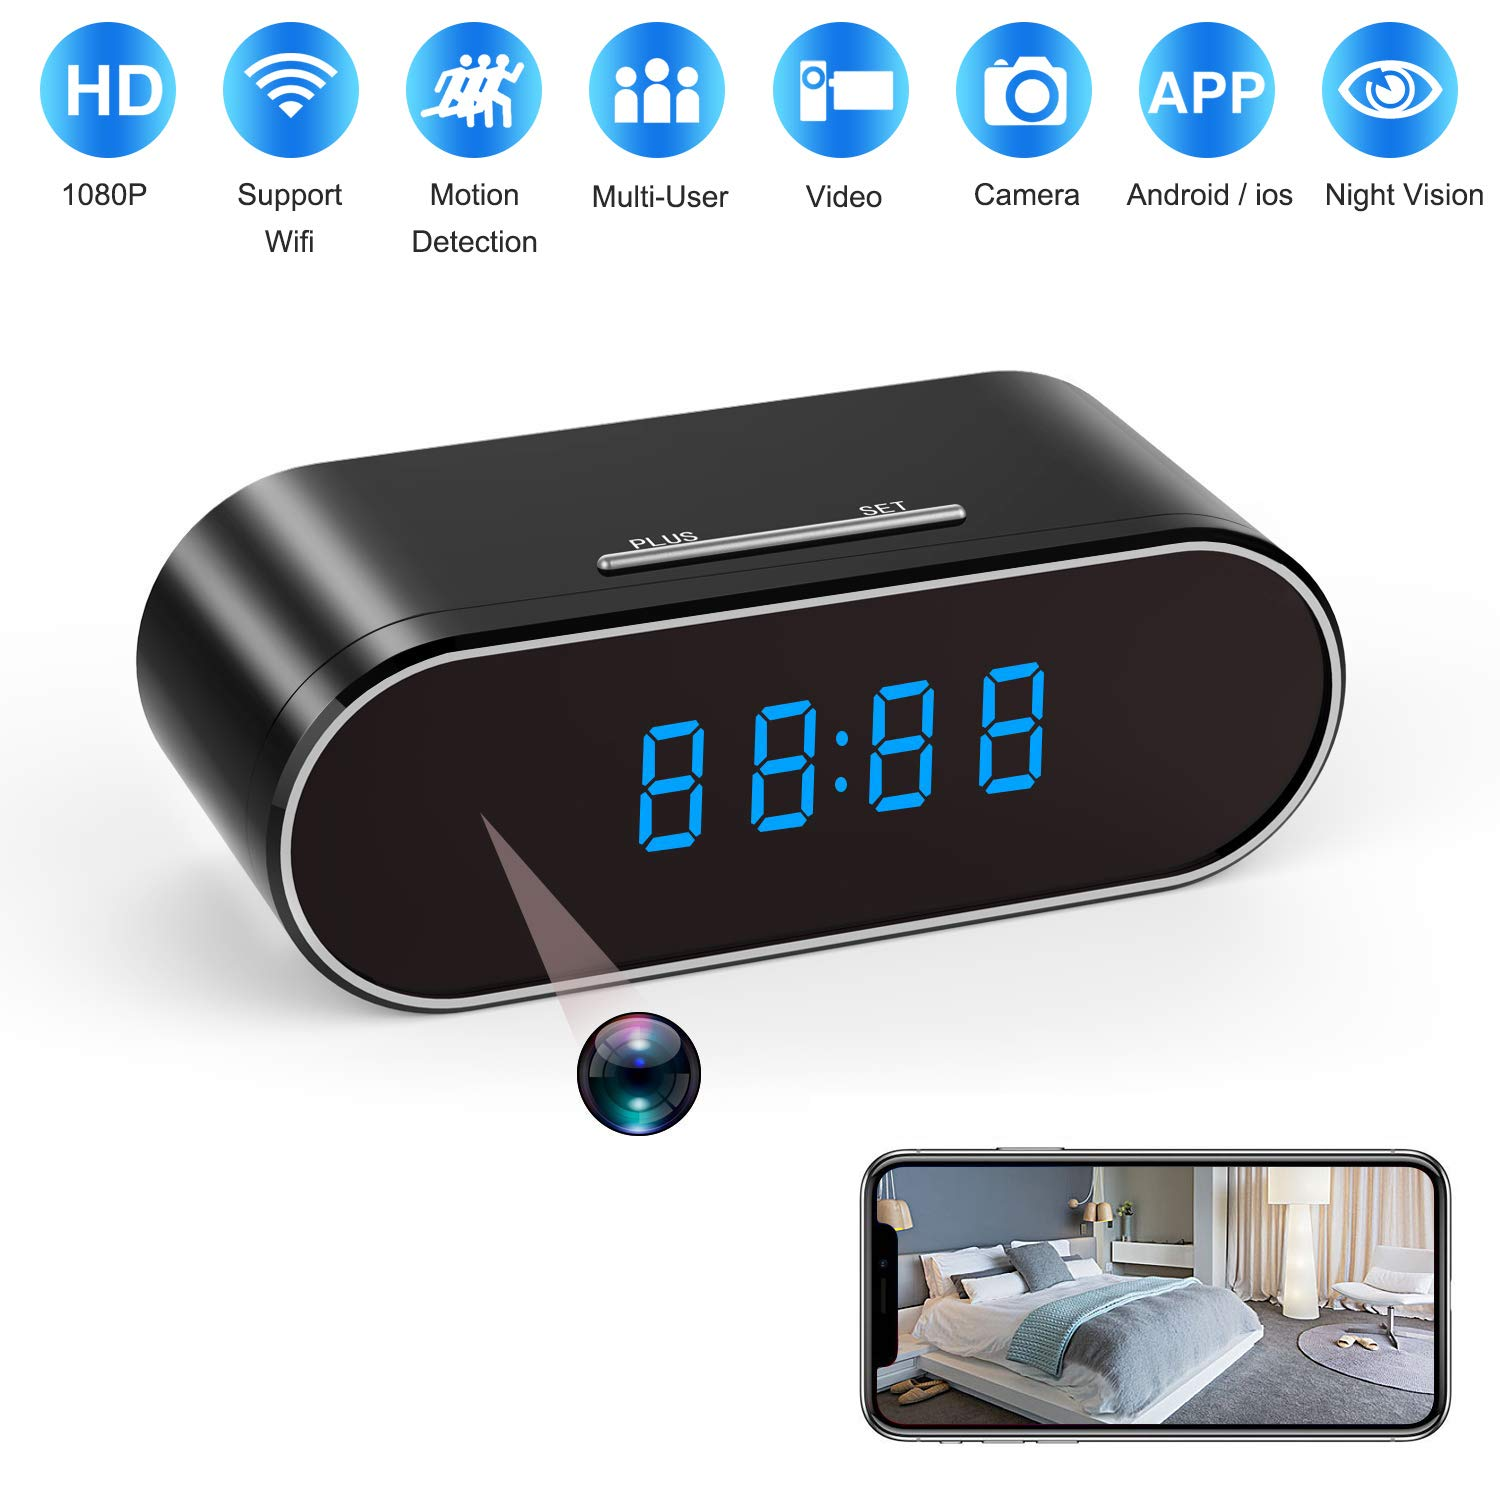 Spy Camera 1080P WiFi, Hidden Cameras Clock Video Recorder 140°Wide Angle Lens Wireless IP Camera for Indoor Home Security Monitoring Nanny Cam with Night Vision Motion Detection (2019 New Version) by ELValley